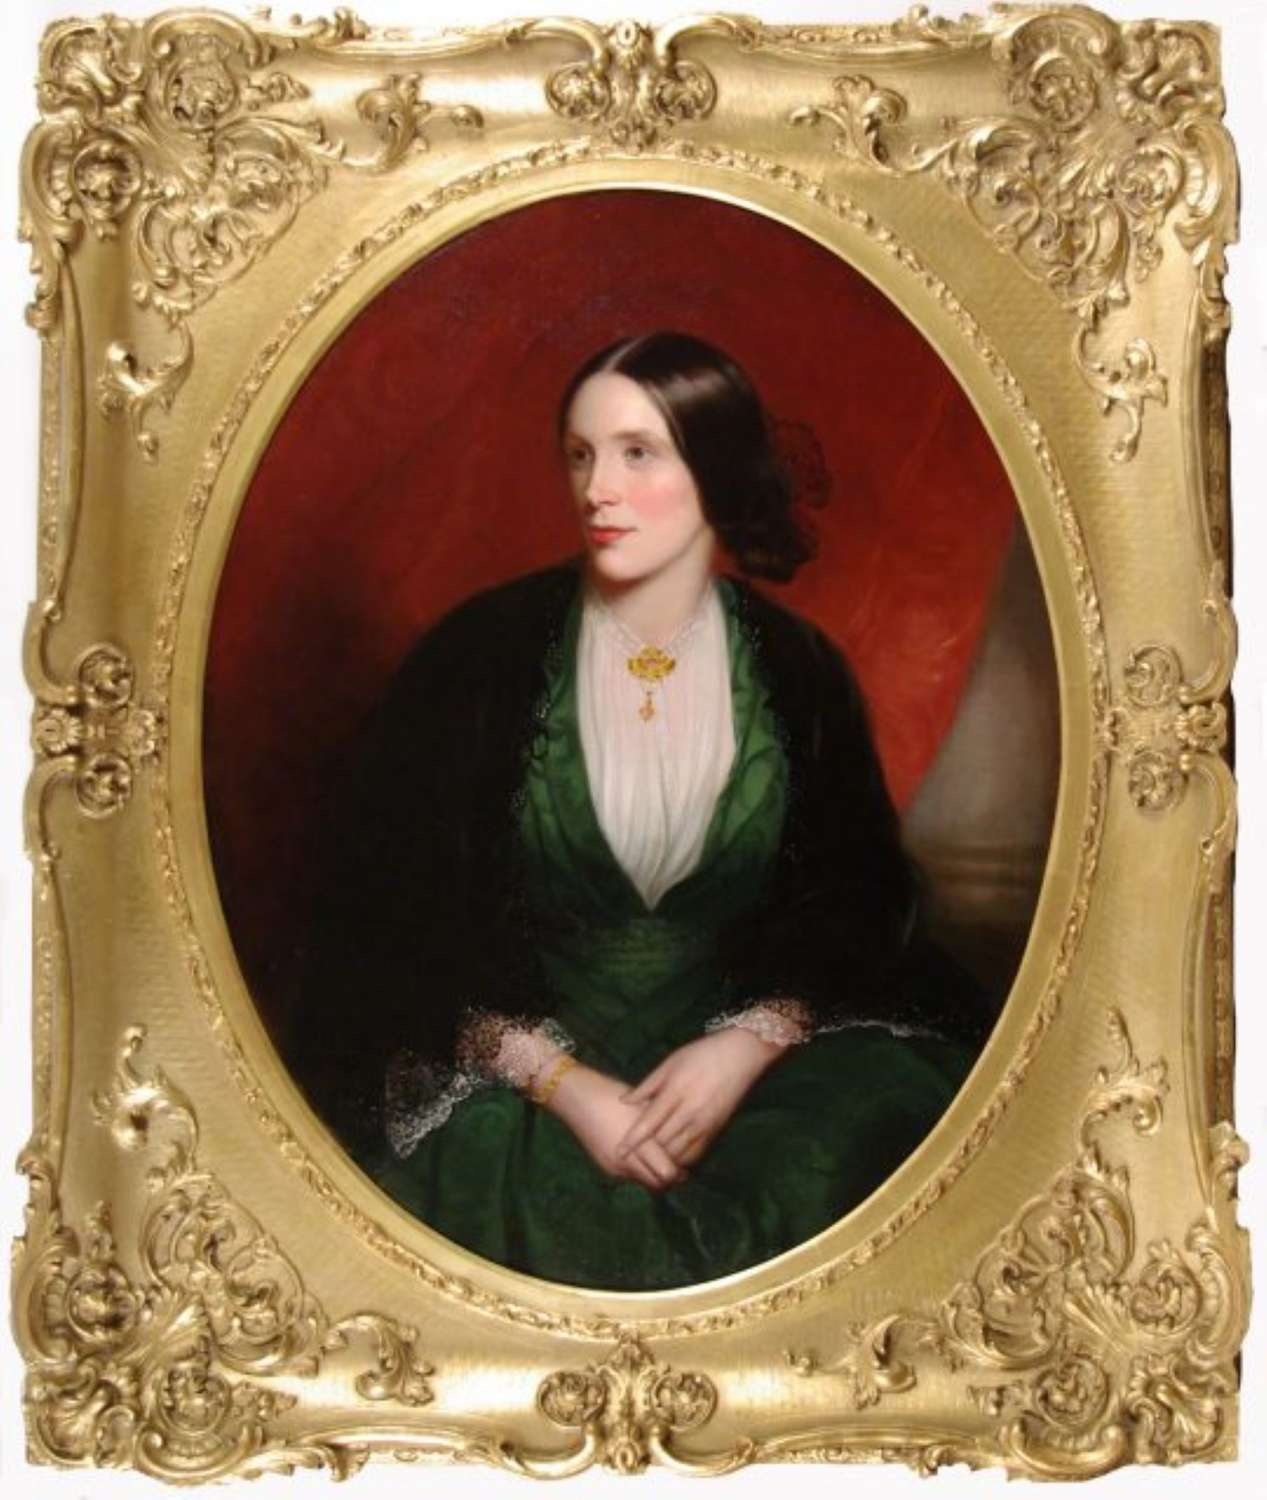 PORTRAIT OF A YOUNG LADY IN A GREEN DRESS AND BLACK SHAWL ~ JAMES SANT